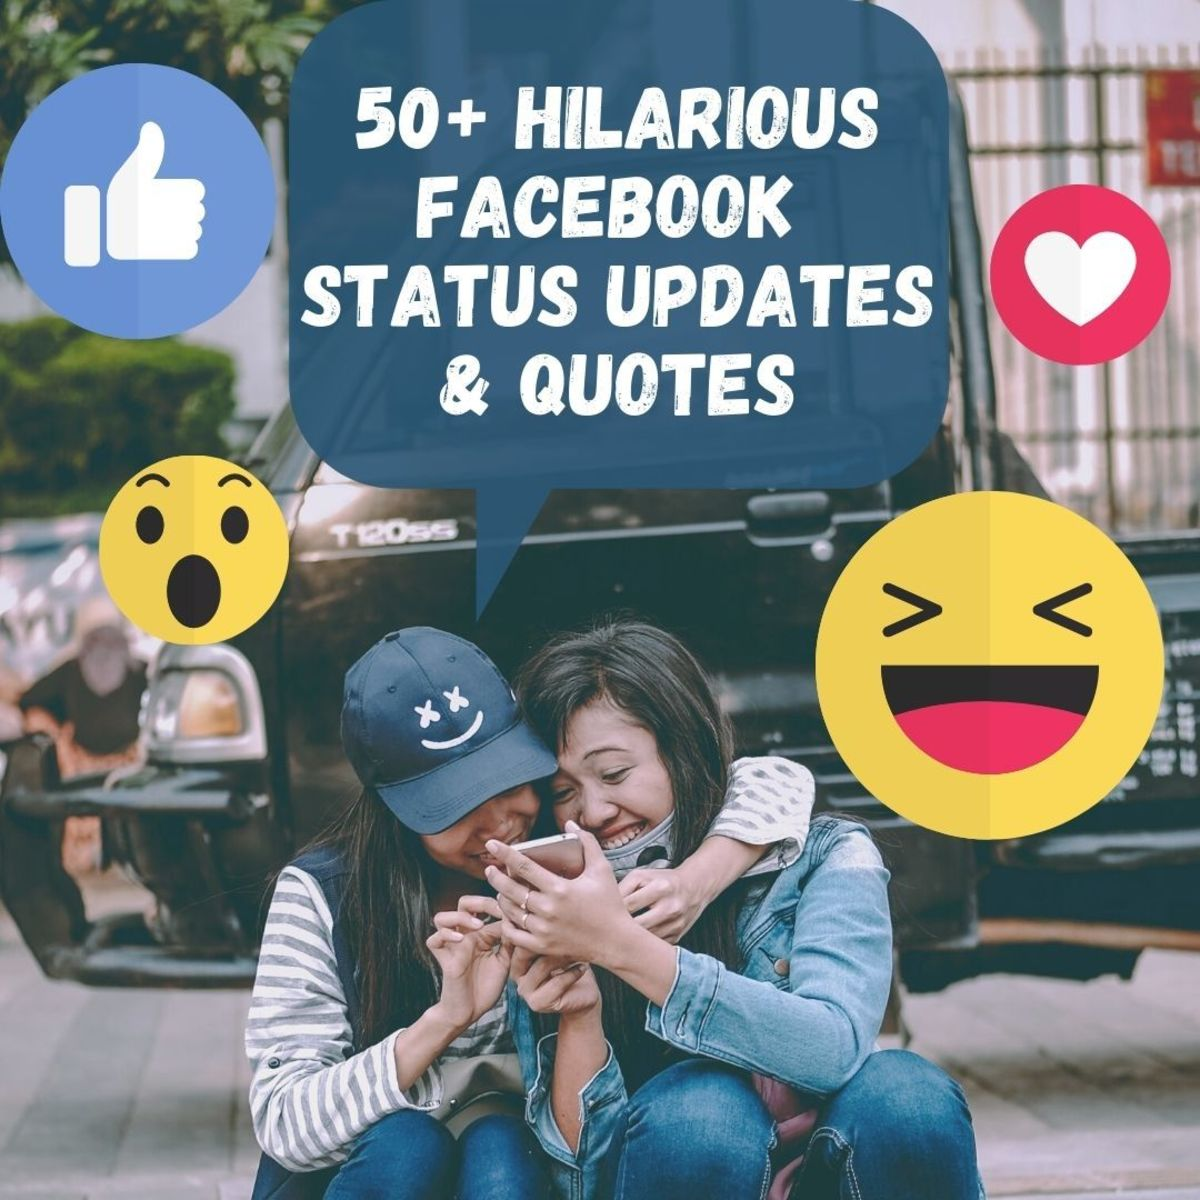 Check out these awesome, hysterically funny Facebook status updates!